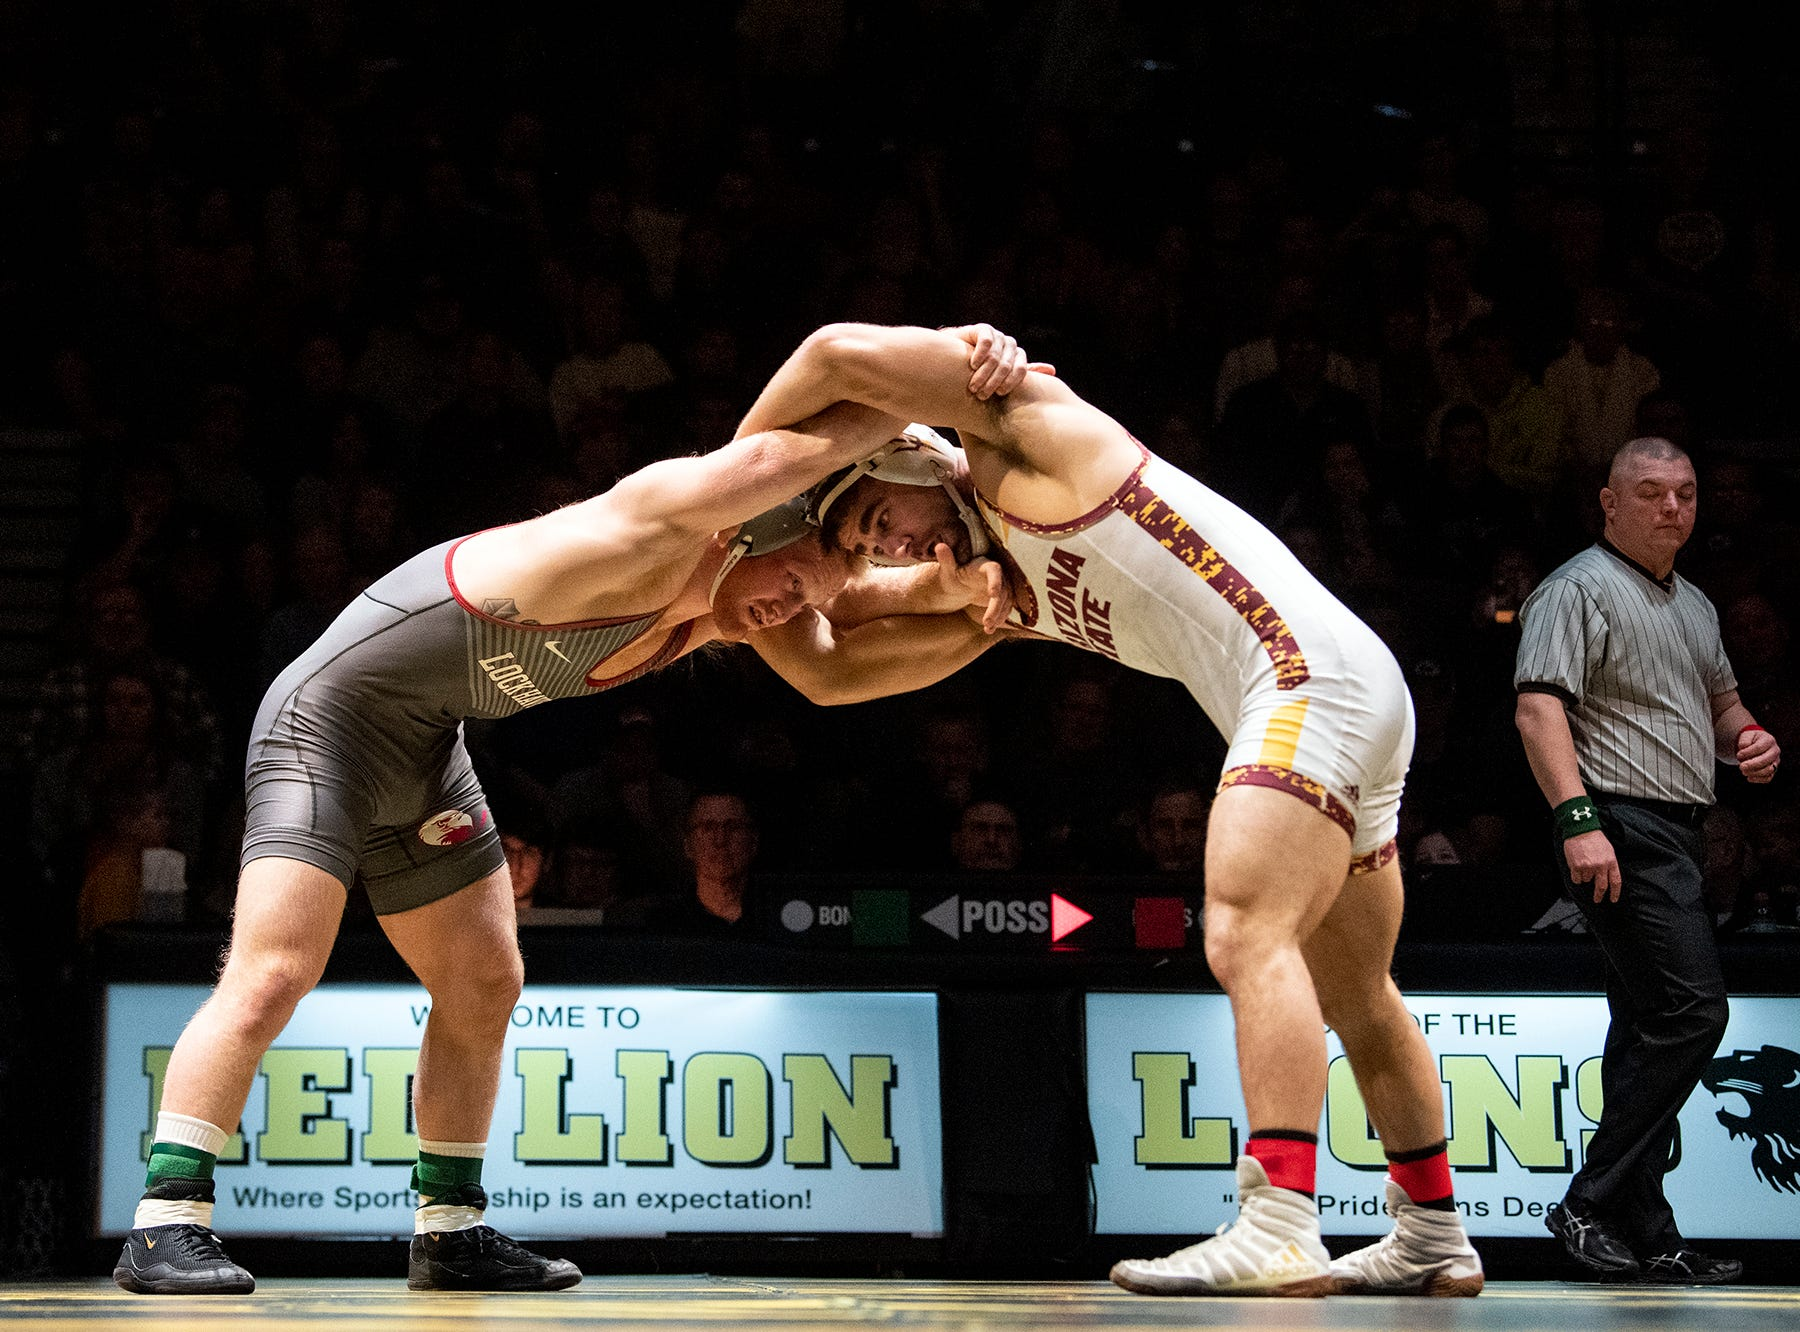 Lock Haven's Chance Marsteller, left, wrestles with Arizona State's Josh Shields during the 165-pound bout at Red Lion's Fitzkee Athletic Center on Friday, Jan. 25, 2019. Shields (No. 5) beat Marsteller (No. 4), 2-1, in a tiebreaker. No. 22 Lock Haven upset No. 12 Arizona State, 23-14, in the first ever 'Rumble in the Jungle.'